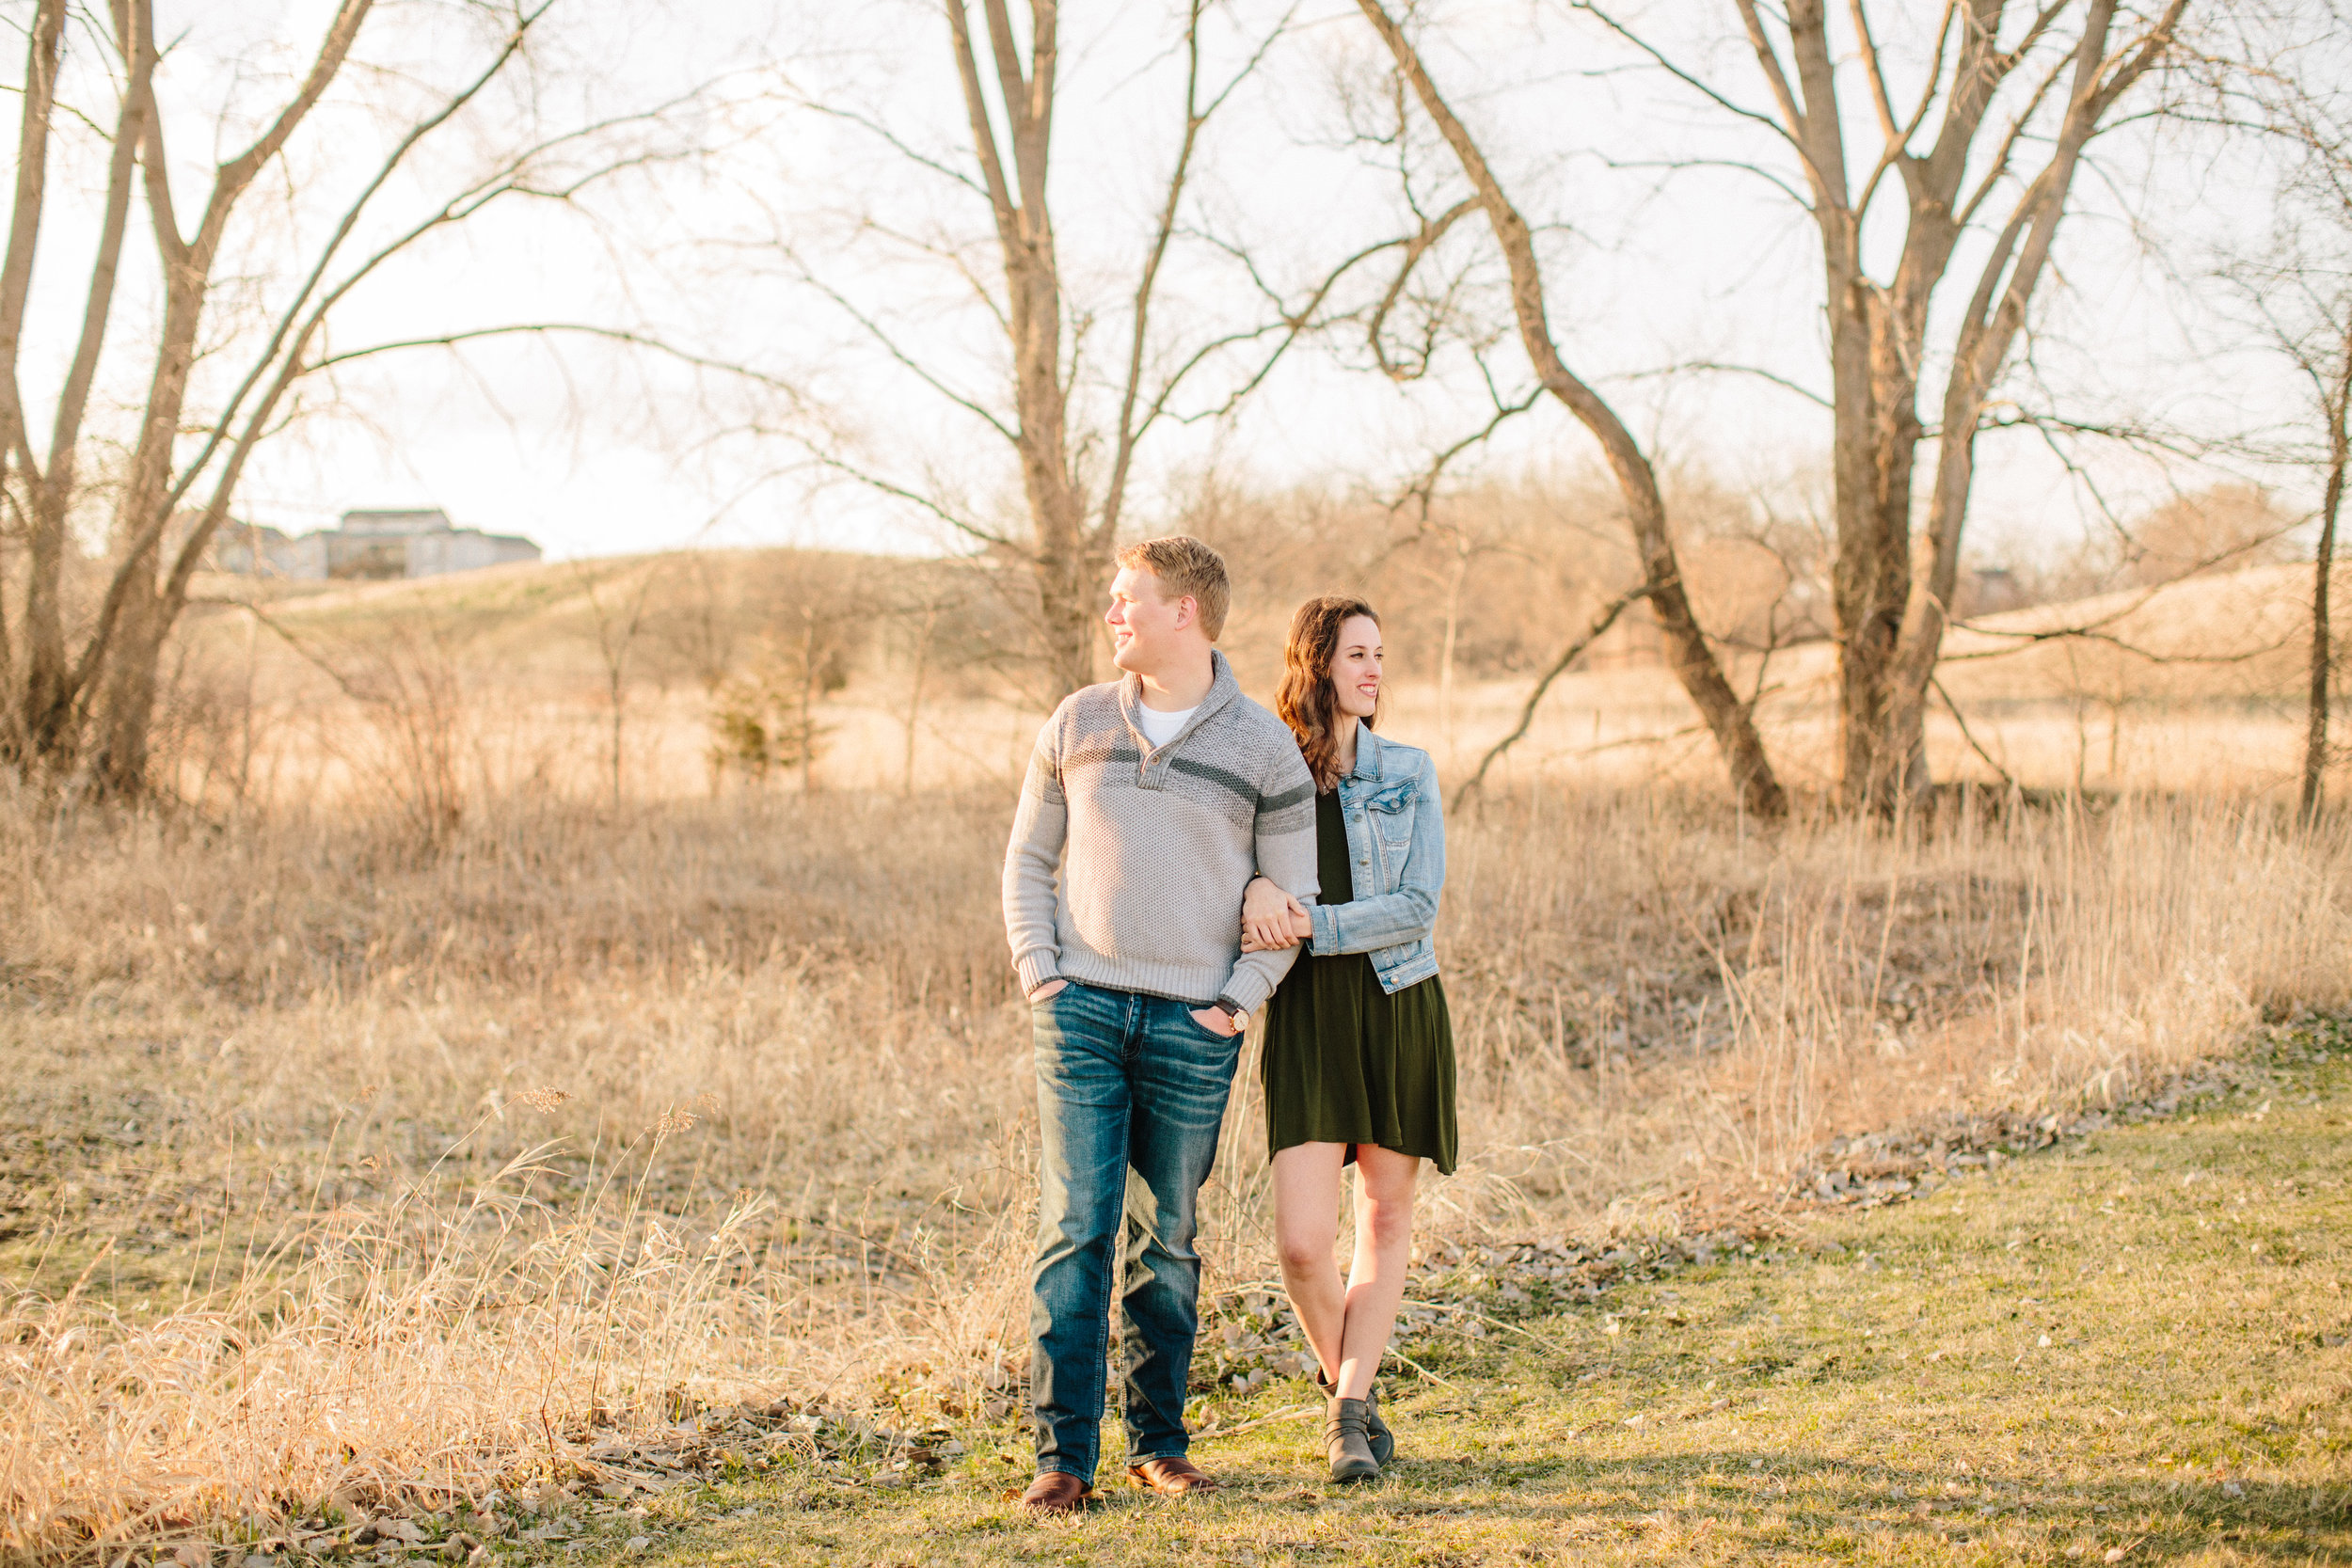 Fall engagemnet pictures in Des Moines